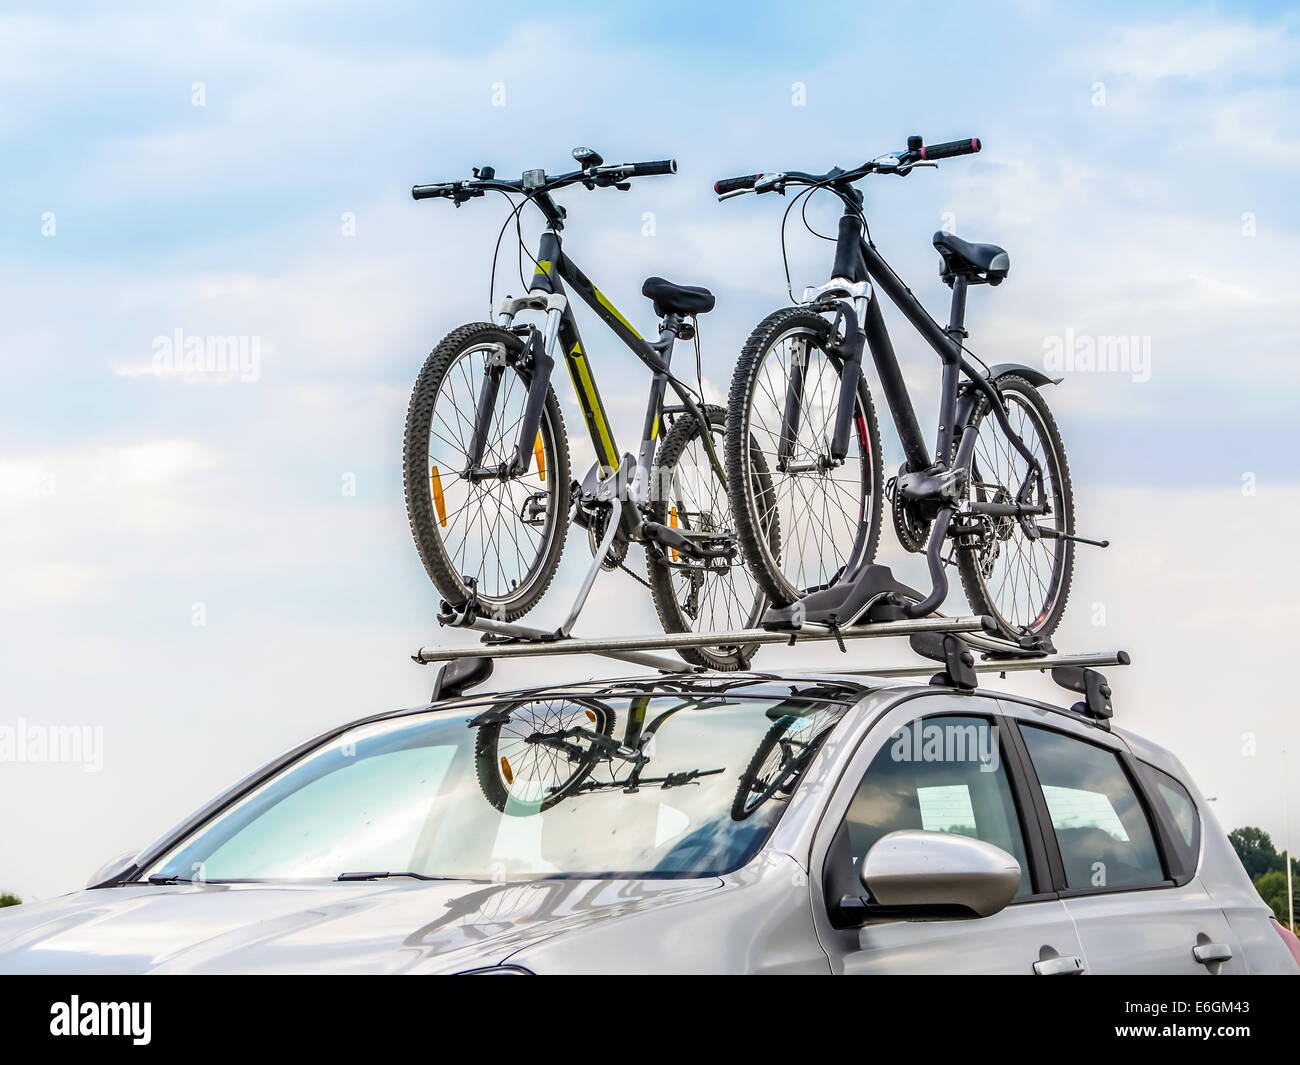 Passenger car with two bicycle mounted to the roof - Stock Image